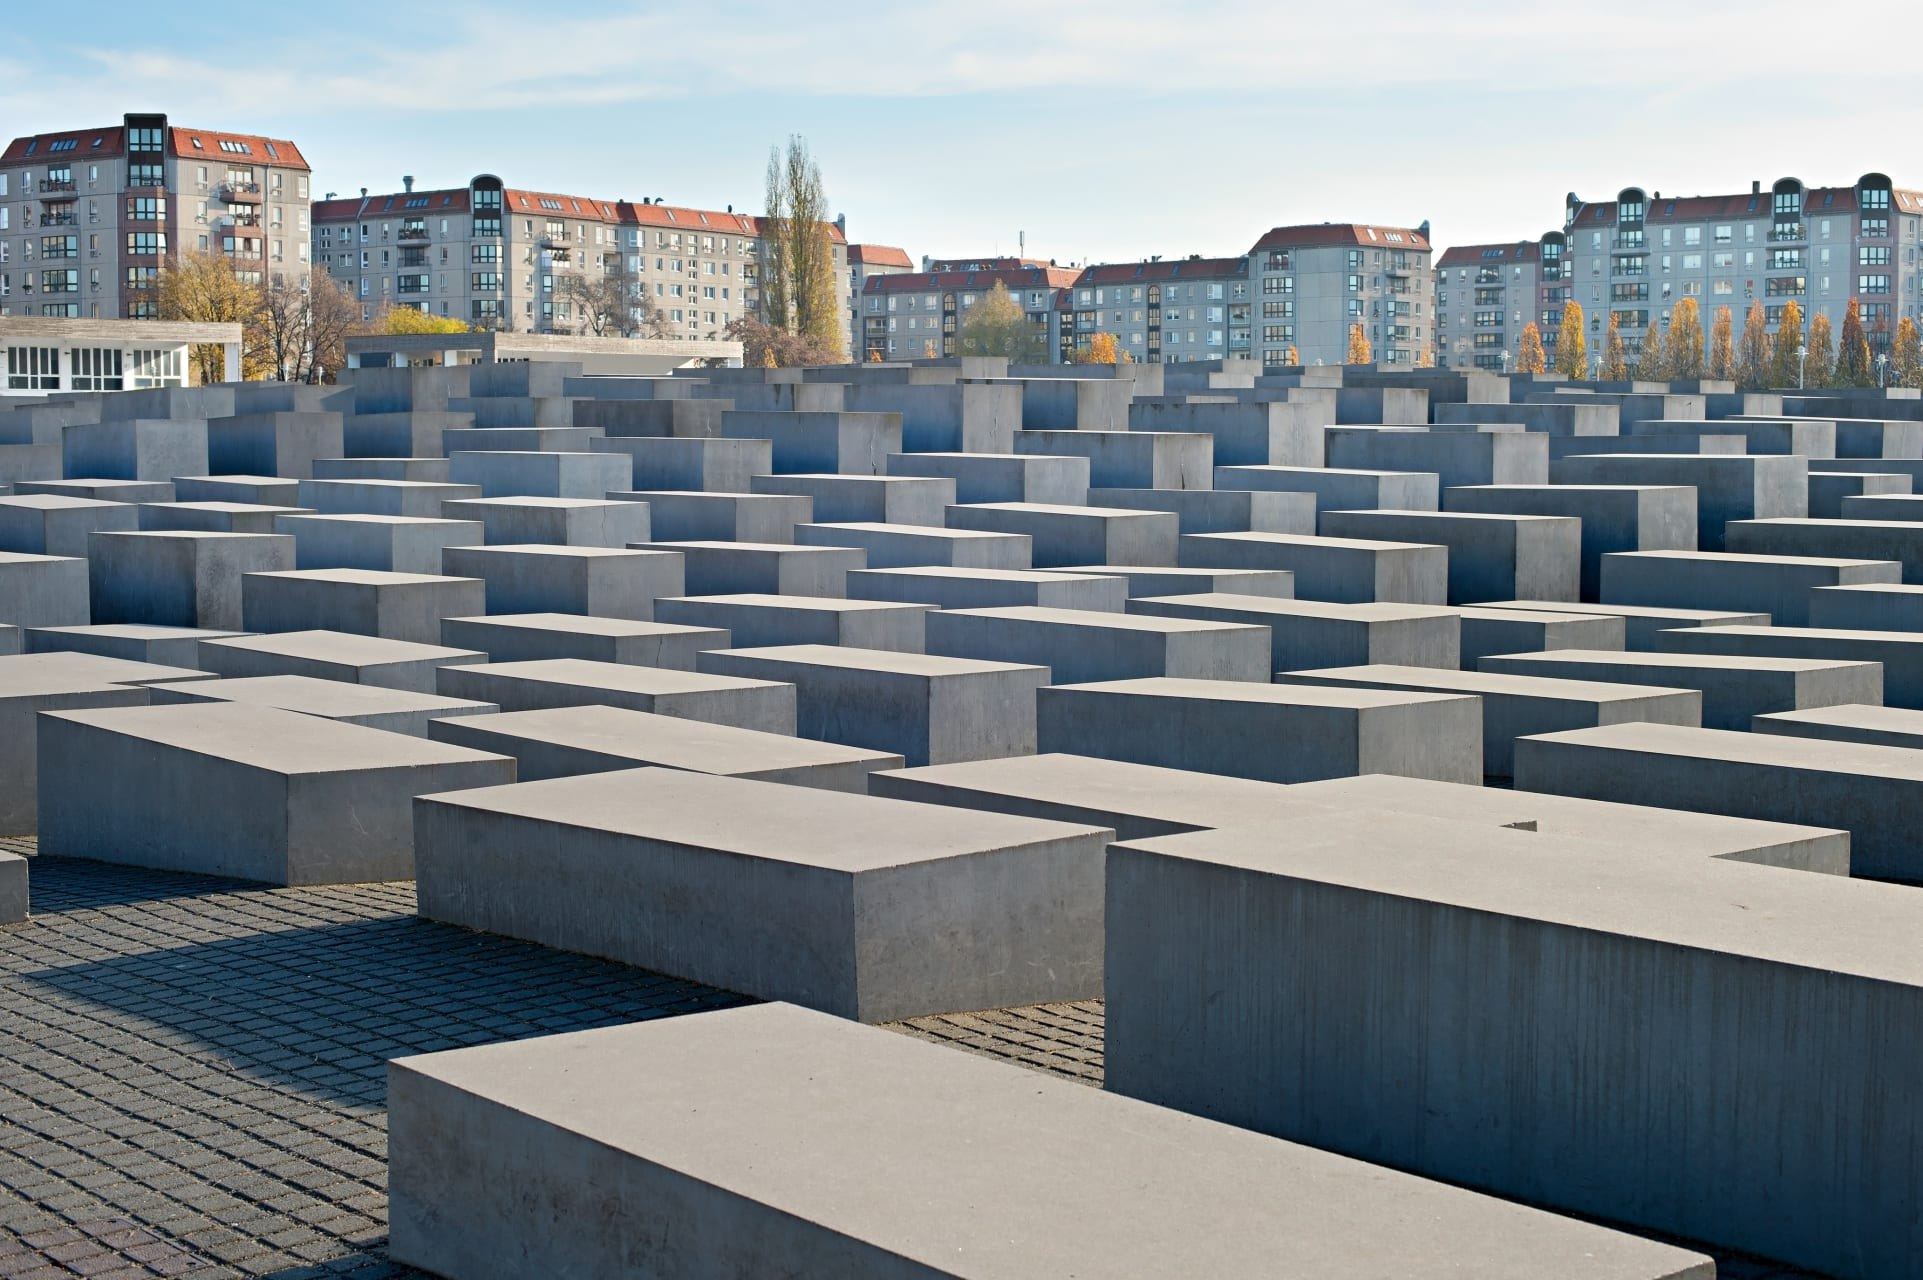 """Berlin - The Downfall"""" (includes: former Ministry of Propaganda, Georg Elser Memorial, location of the New Chancellery, location of the """"Führer Bunker"""", Holocaust Memorial)"""